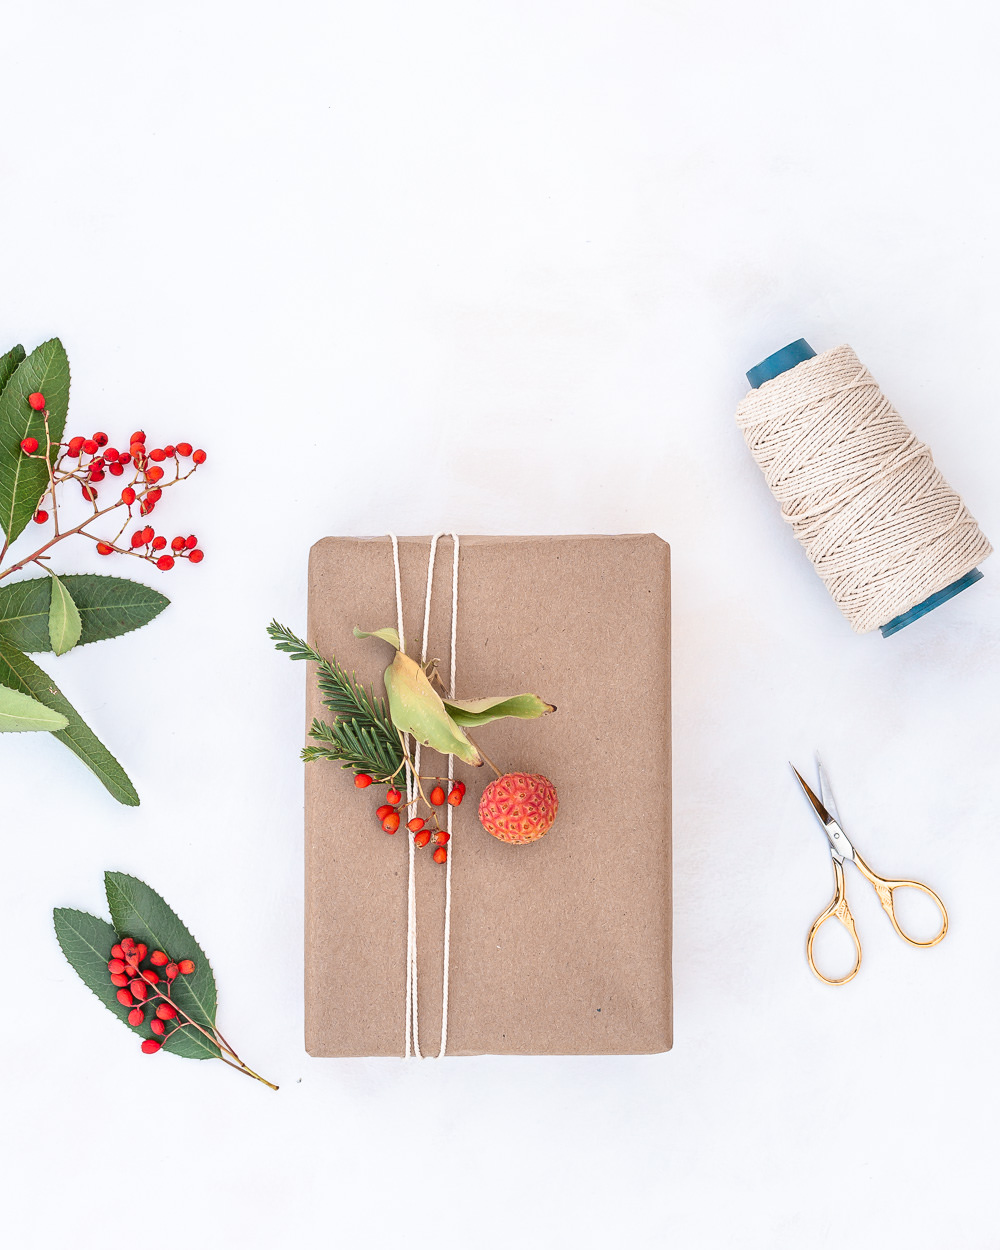 Eco-friendly gift wrapping with craft paper, twine and berries